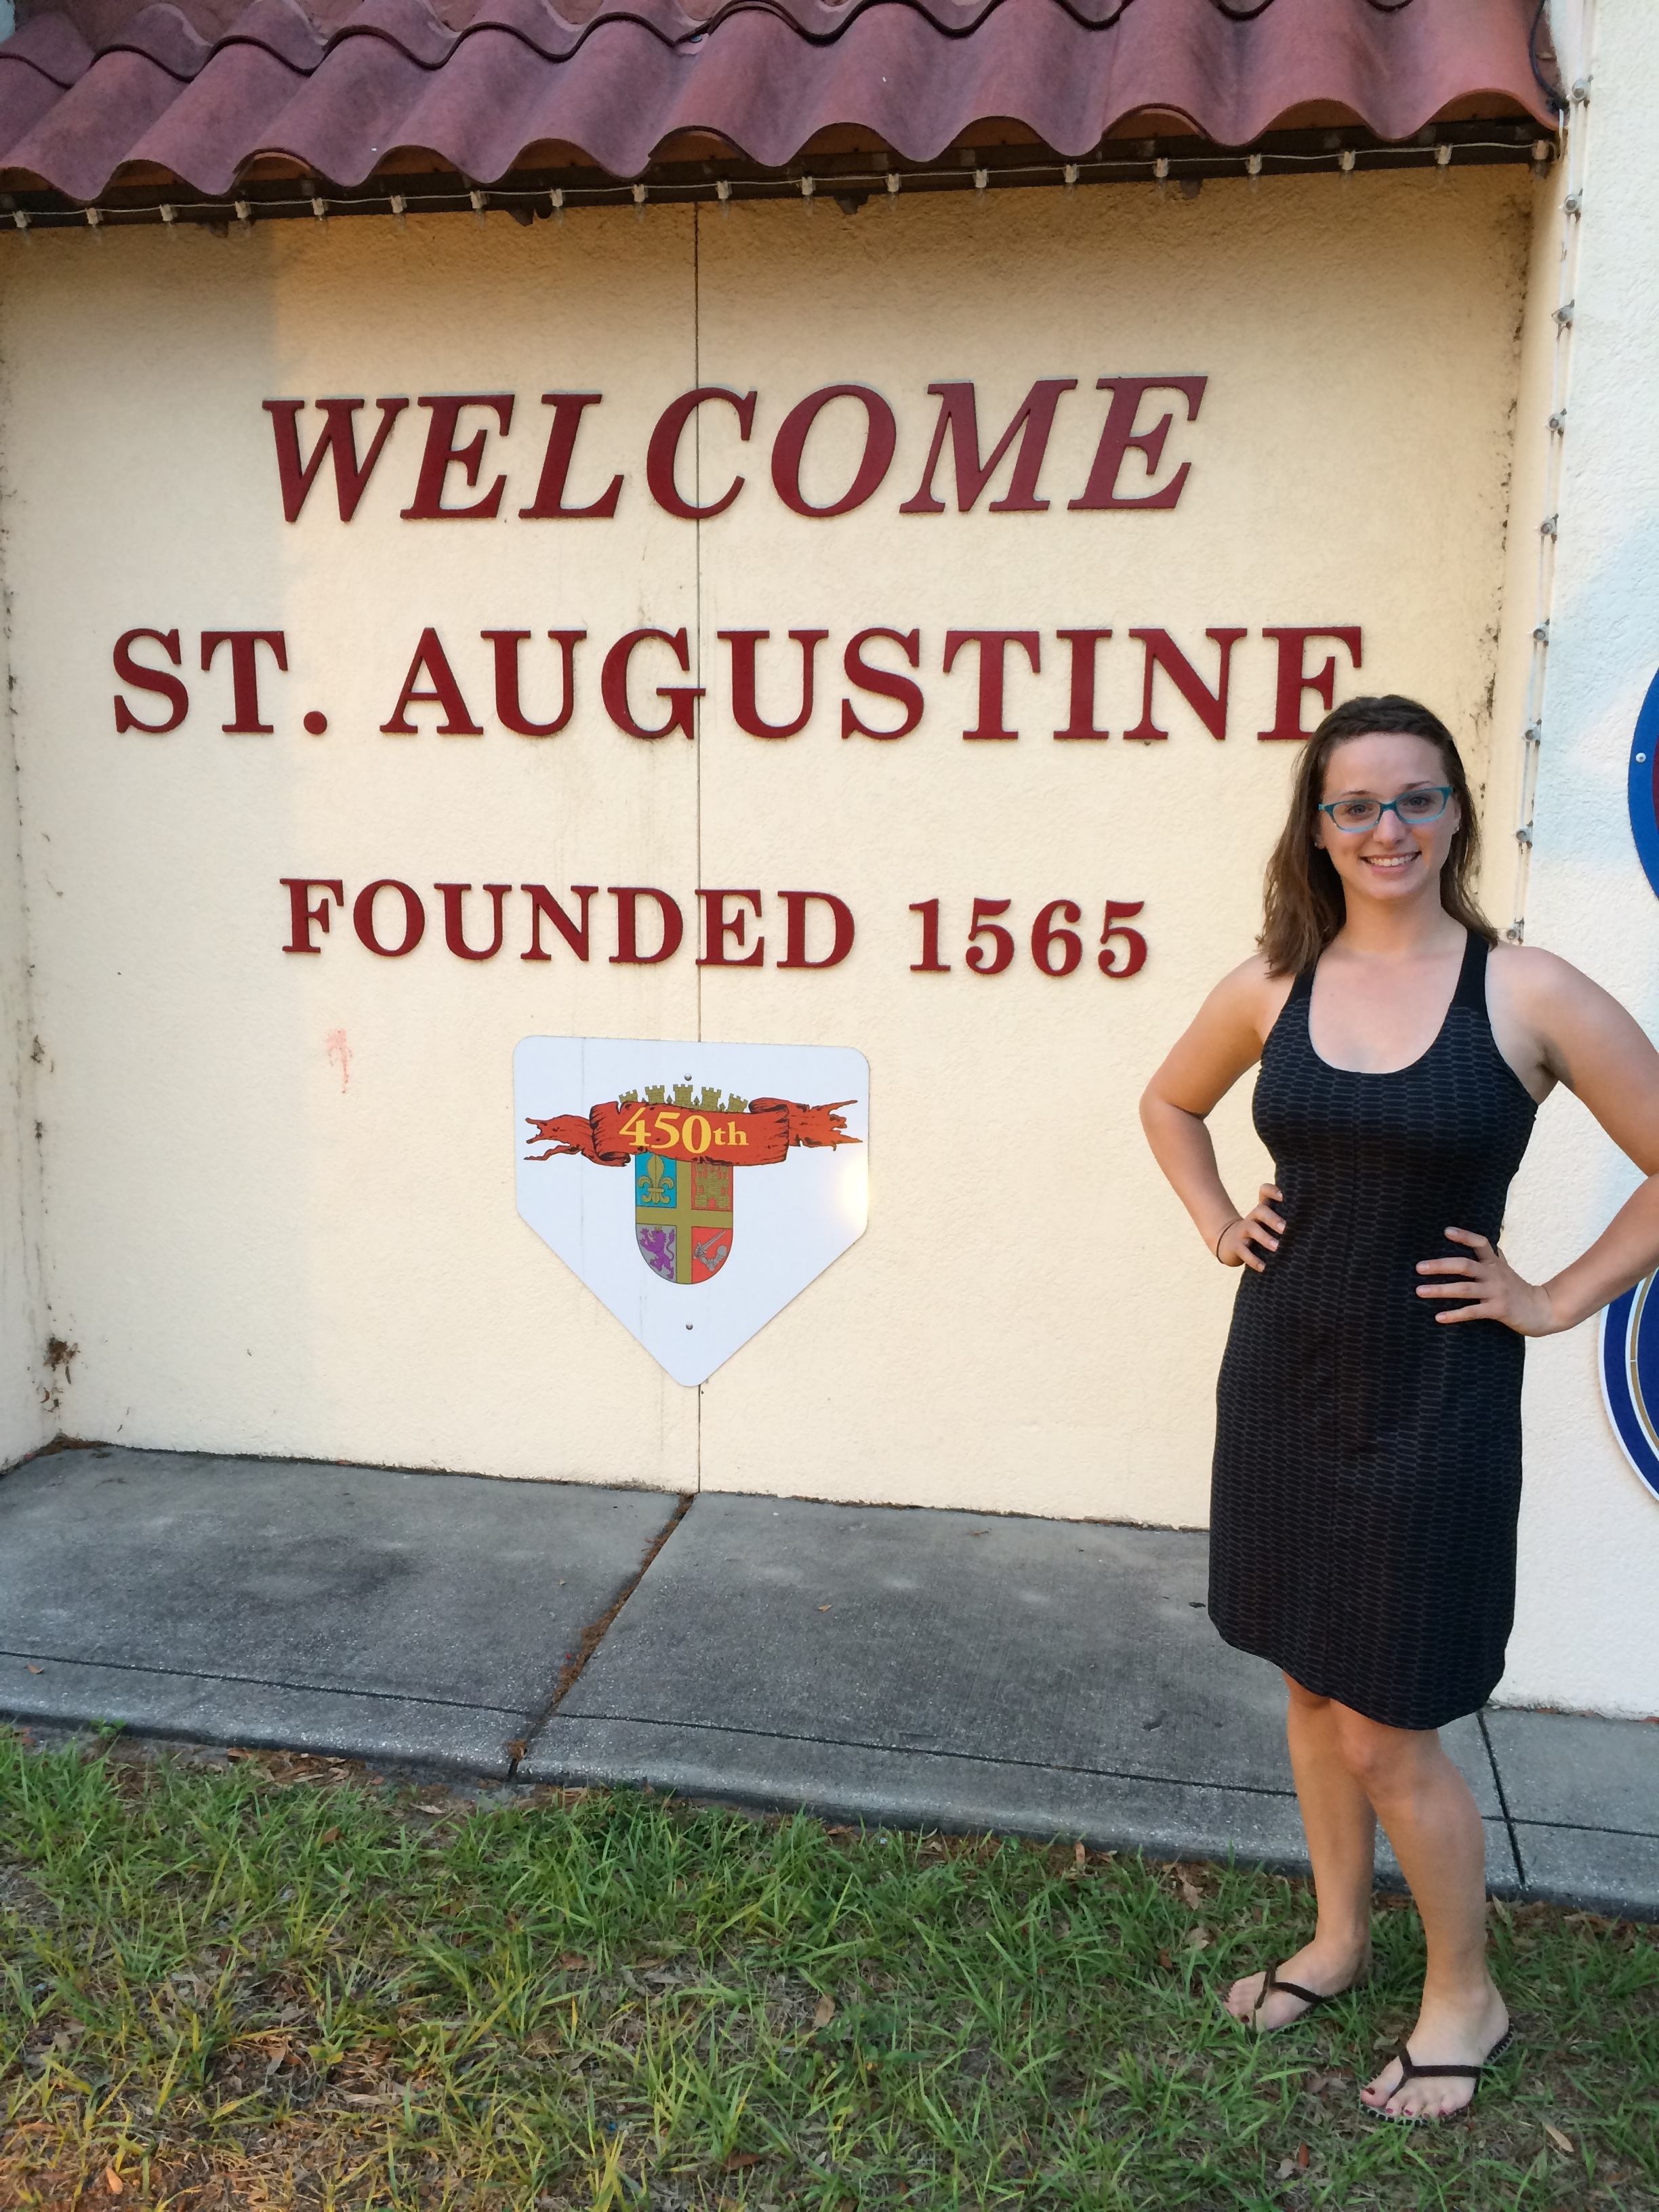 Welcome to St. Augustine!